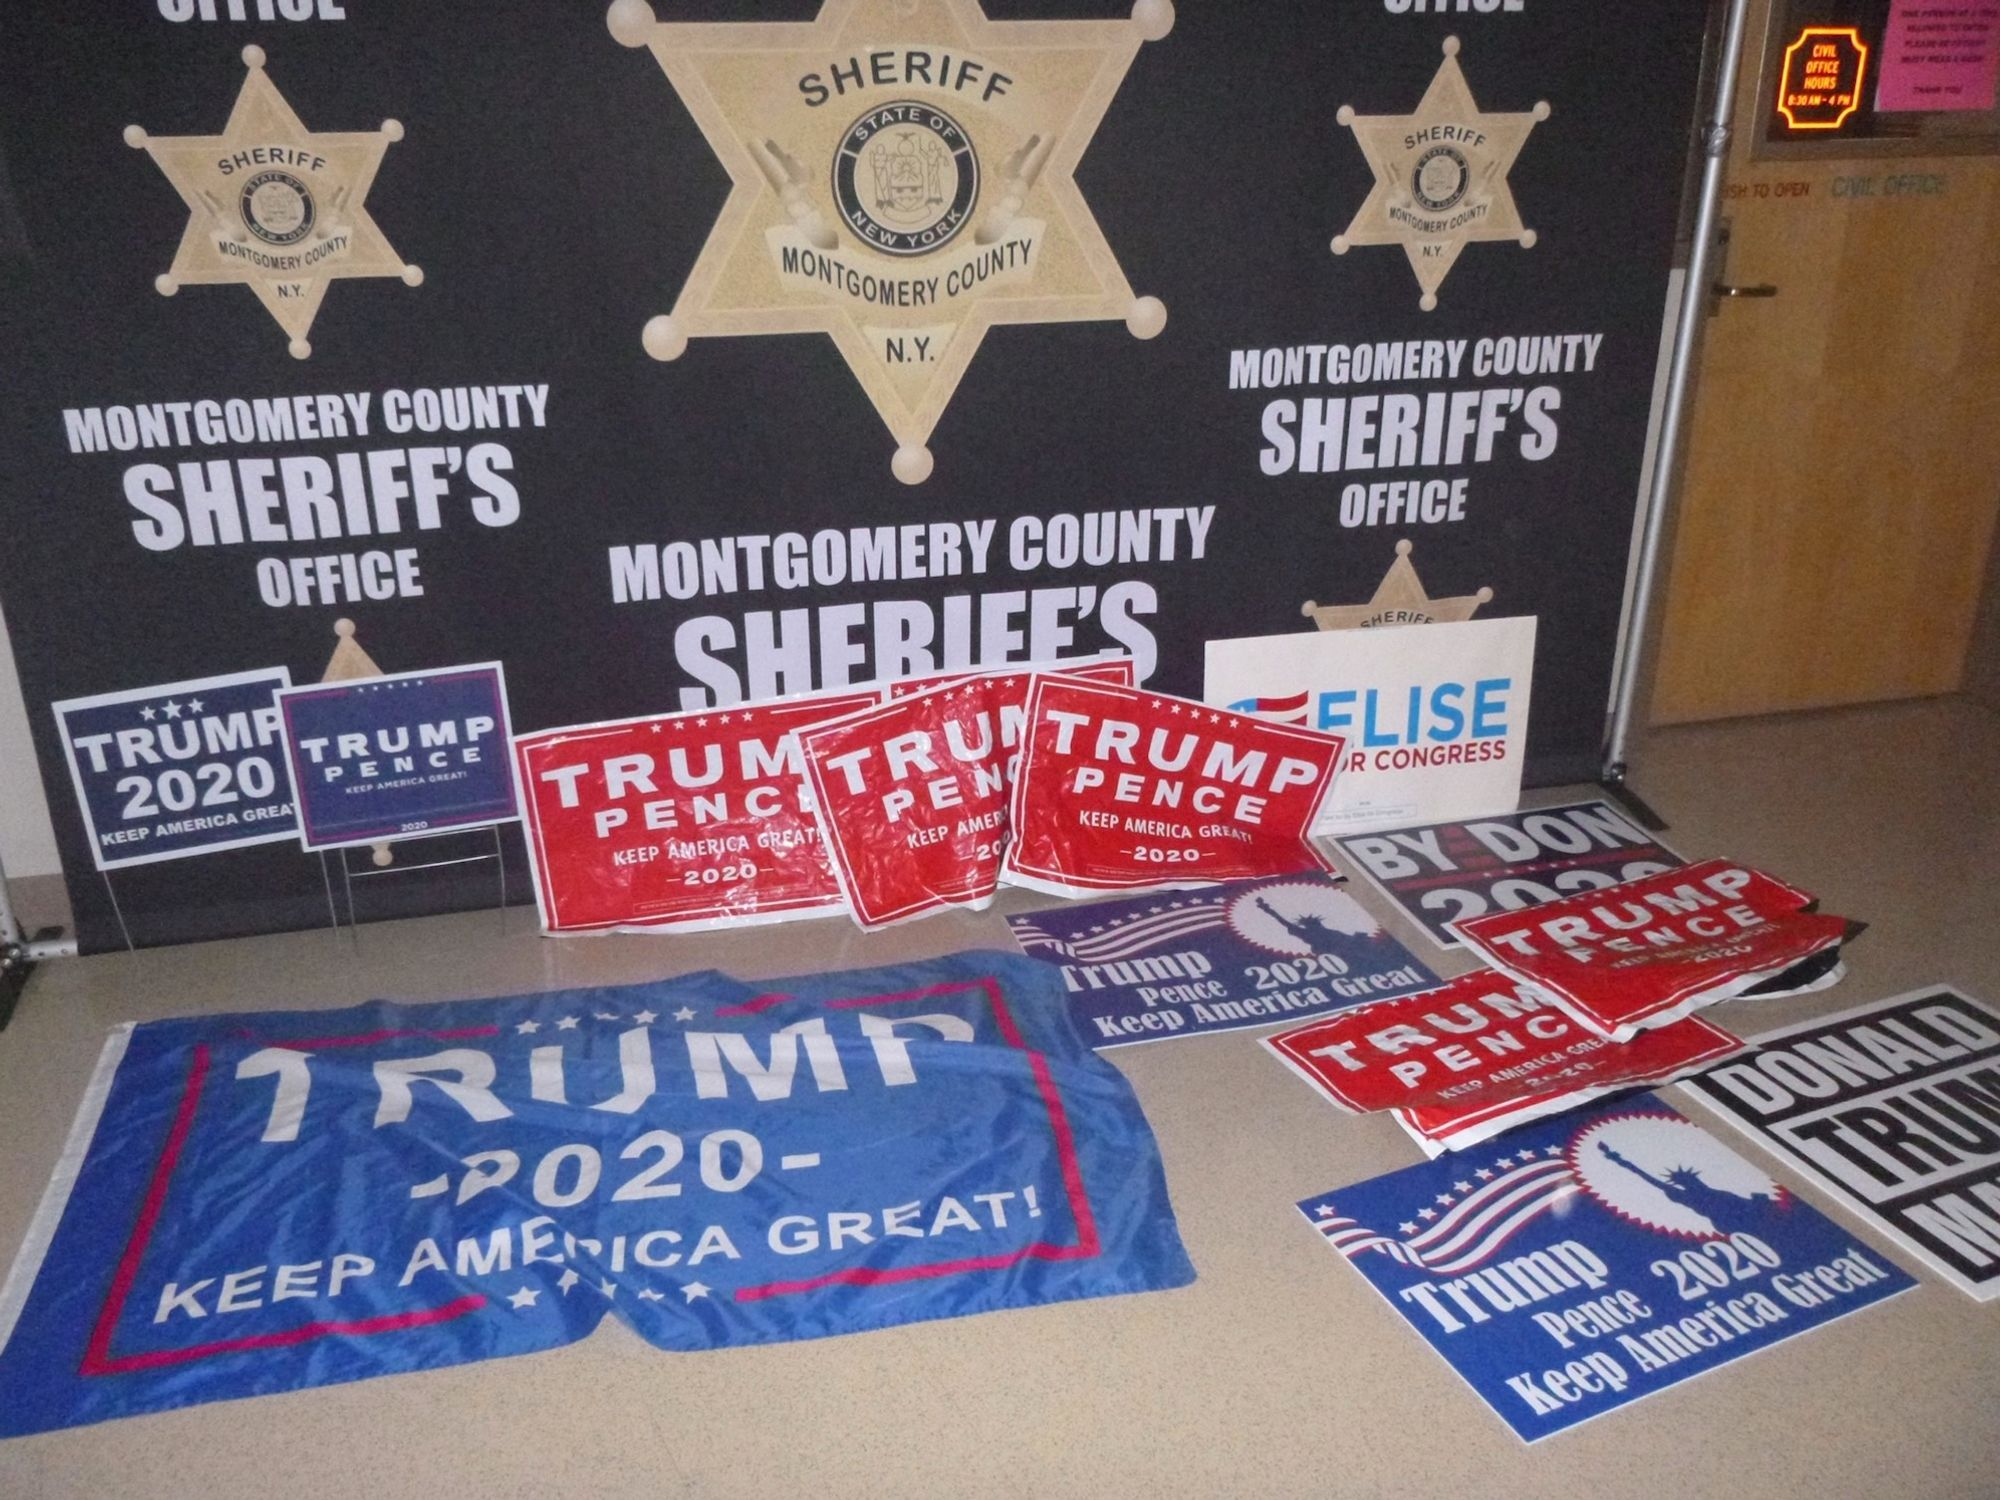 Police arrest woman for allegedly driving 6 children around upstate New York to rip down Trump campaign signs